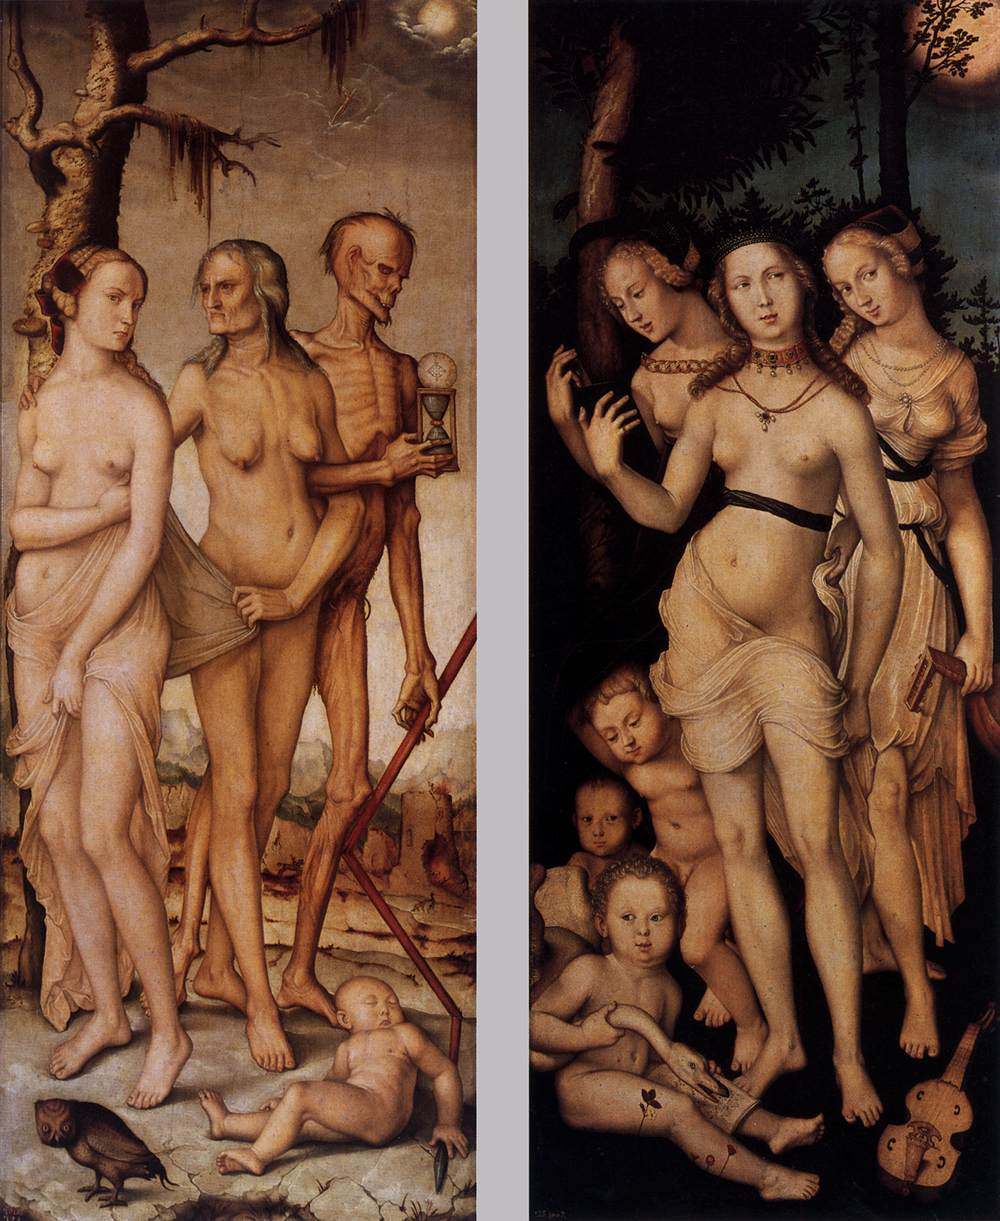 http://uploads4.wikipaintings.org/images/hans-baldung/three-ages-of-man-and-three-graces-1539.jpg